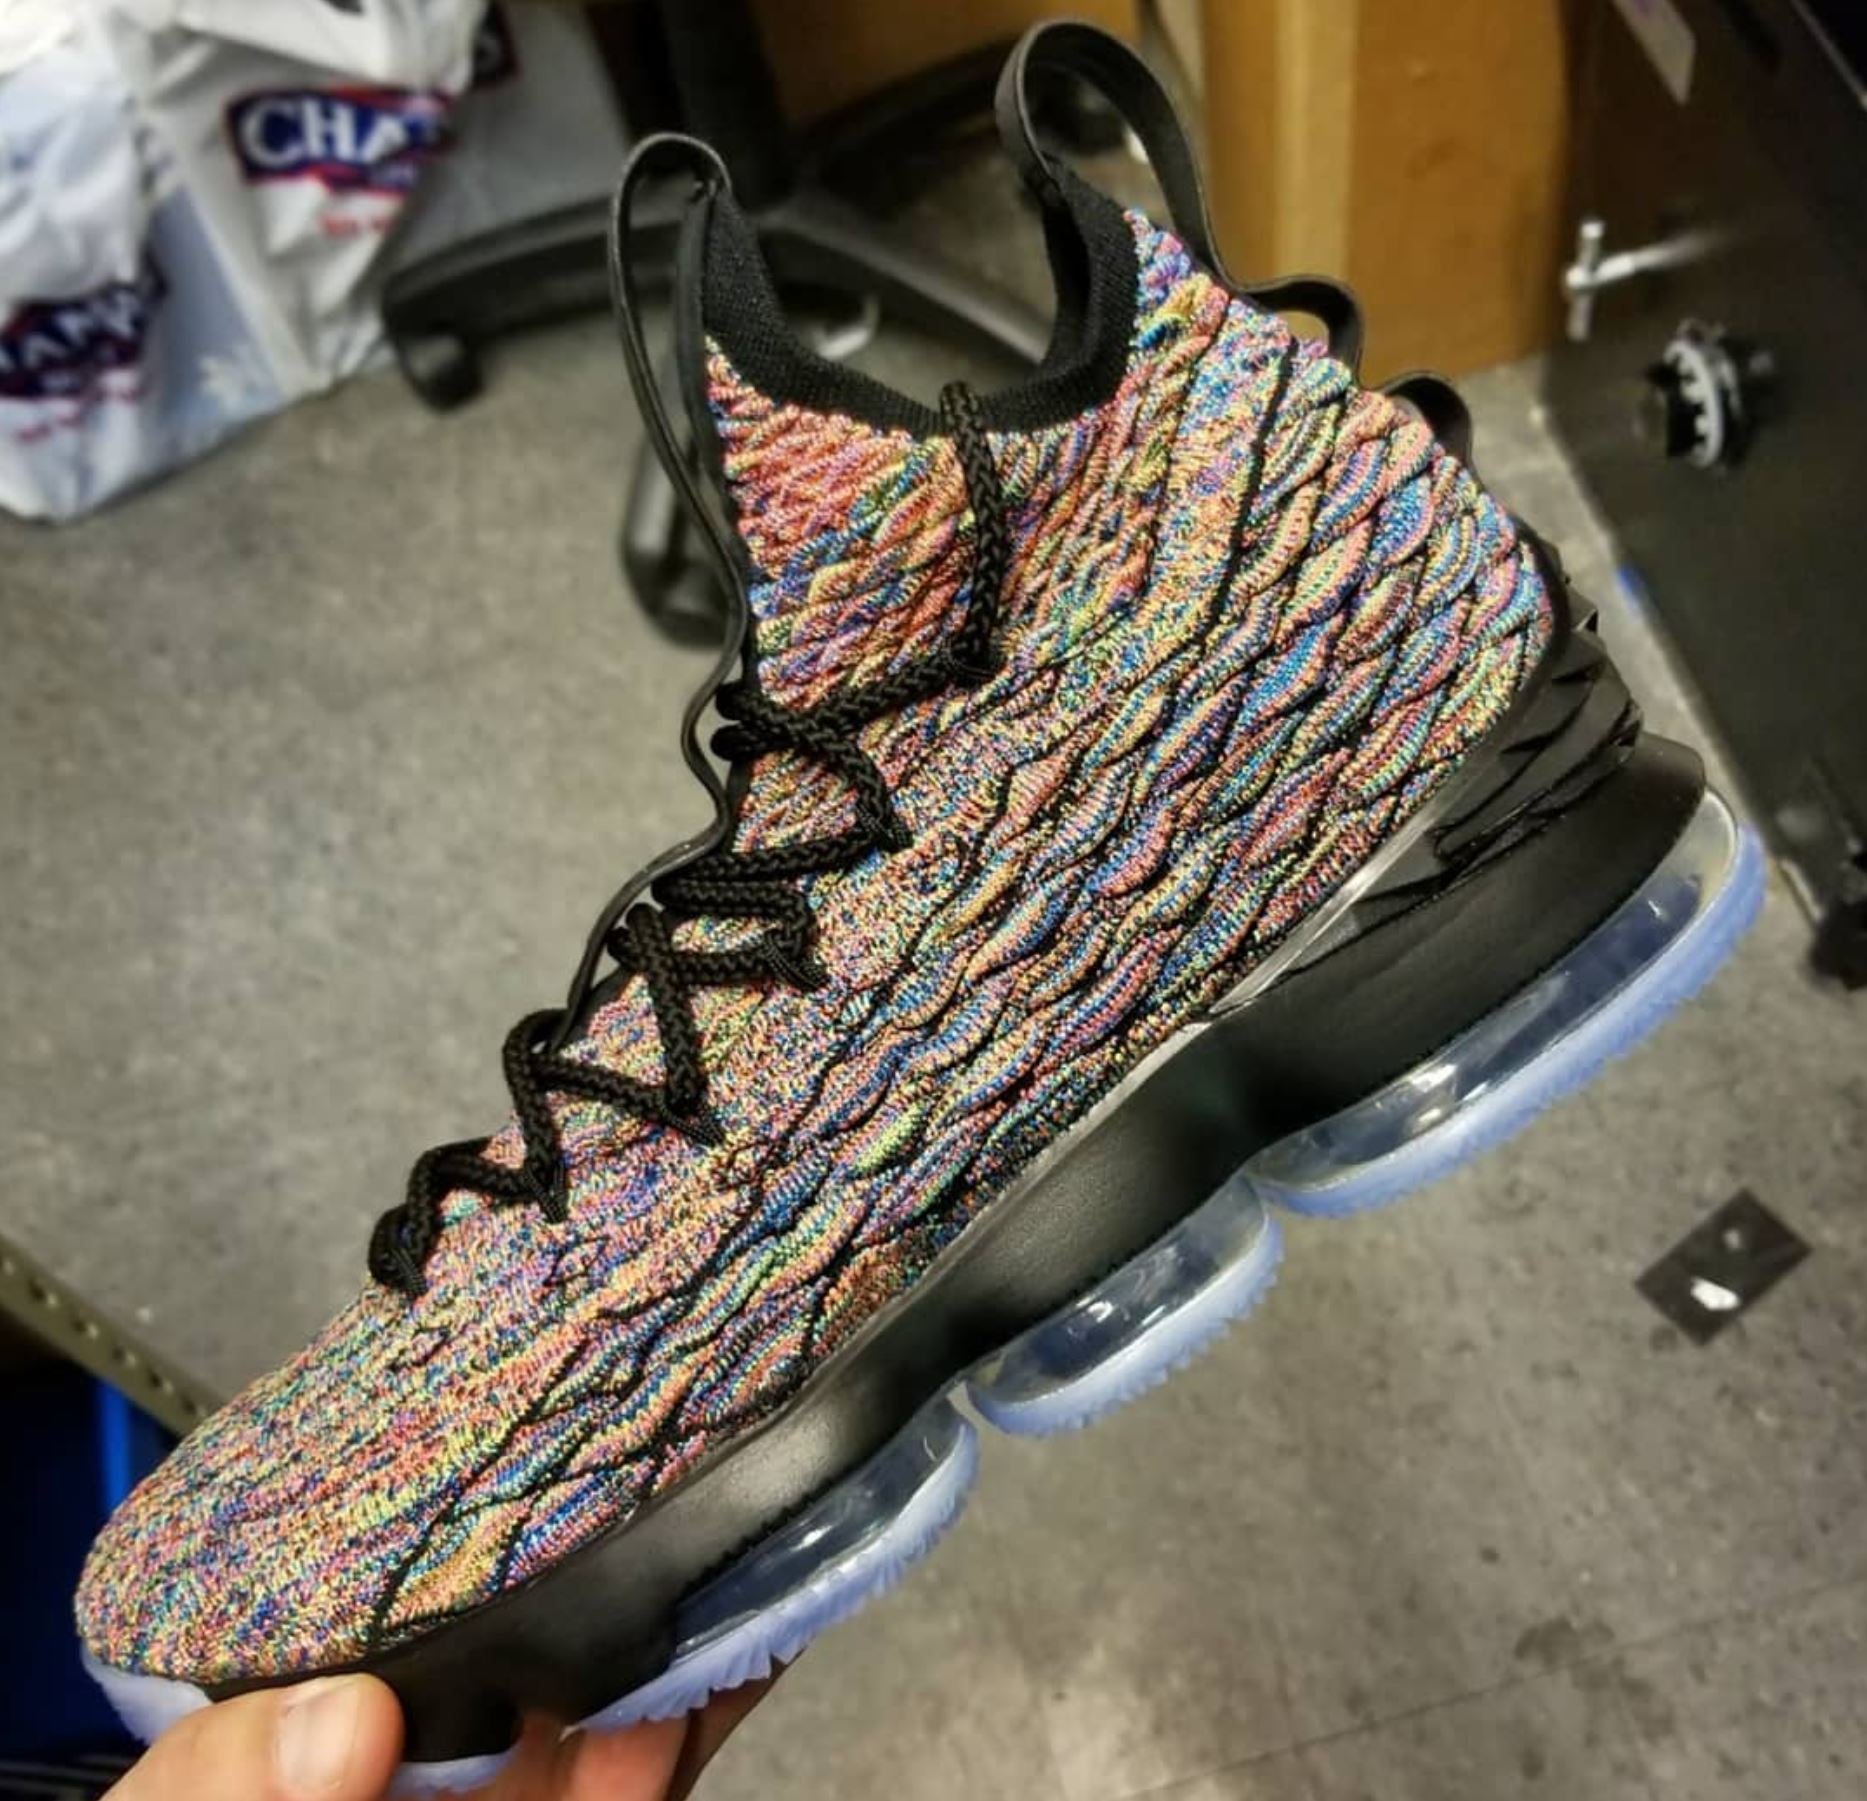 wholesale dealer f7479 ee805 First Look at the Black Nike LeBron 15 'Multicolor' Arriving ...